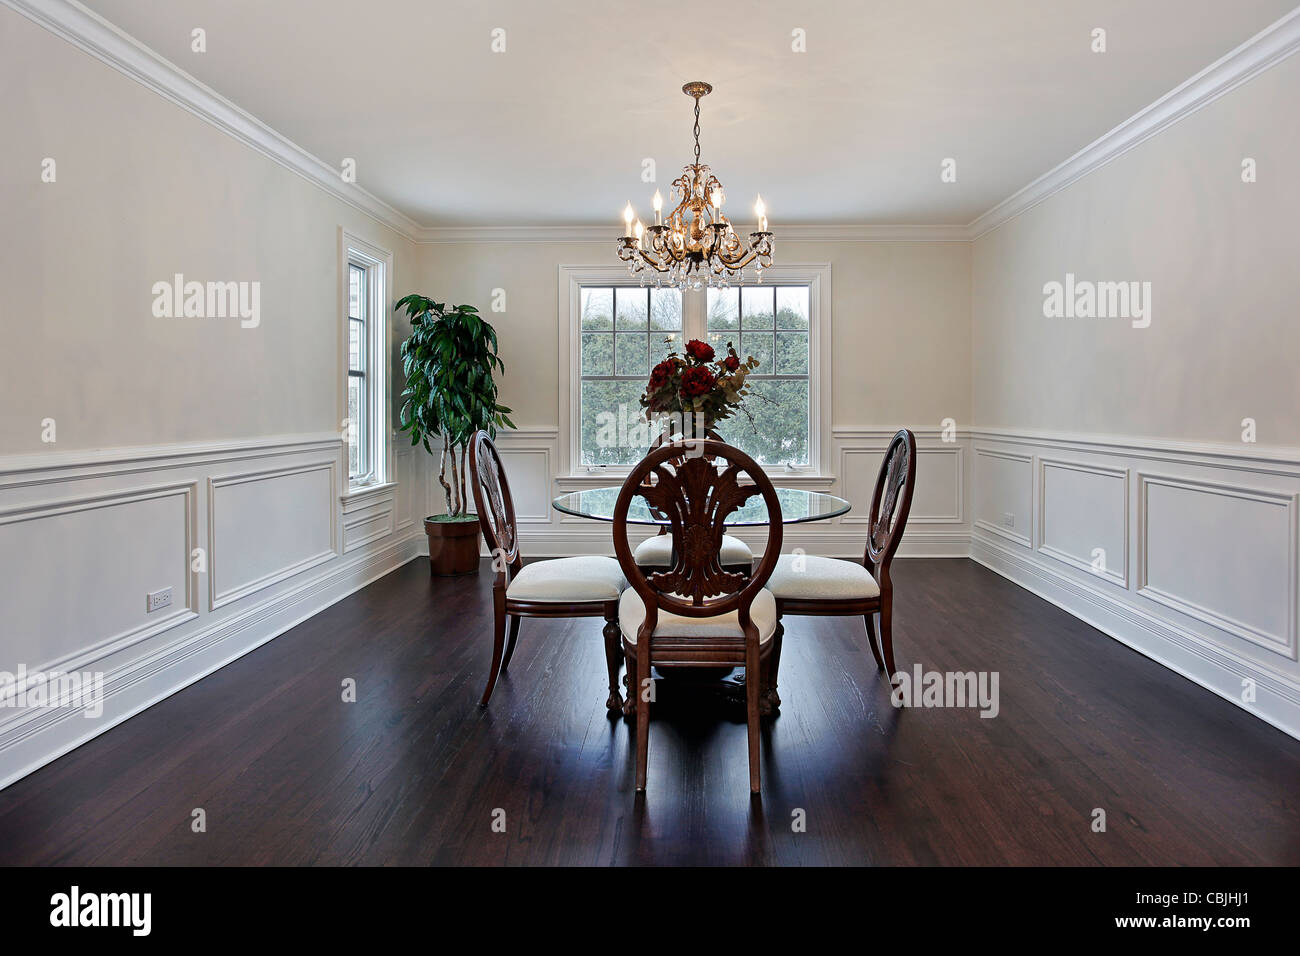 Dining room in luxury home with dark wood flooring - Dining Room In Luxury Home With Dark Wood Flooring Stock Photo